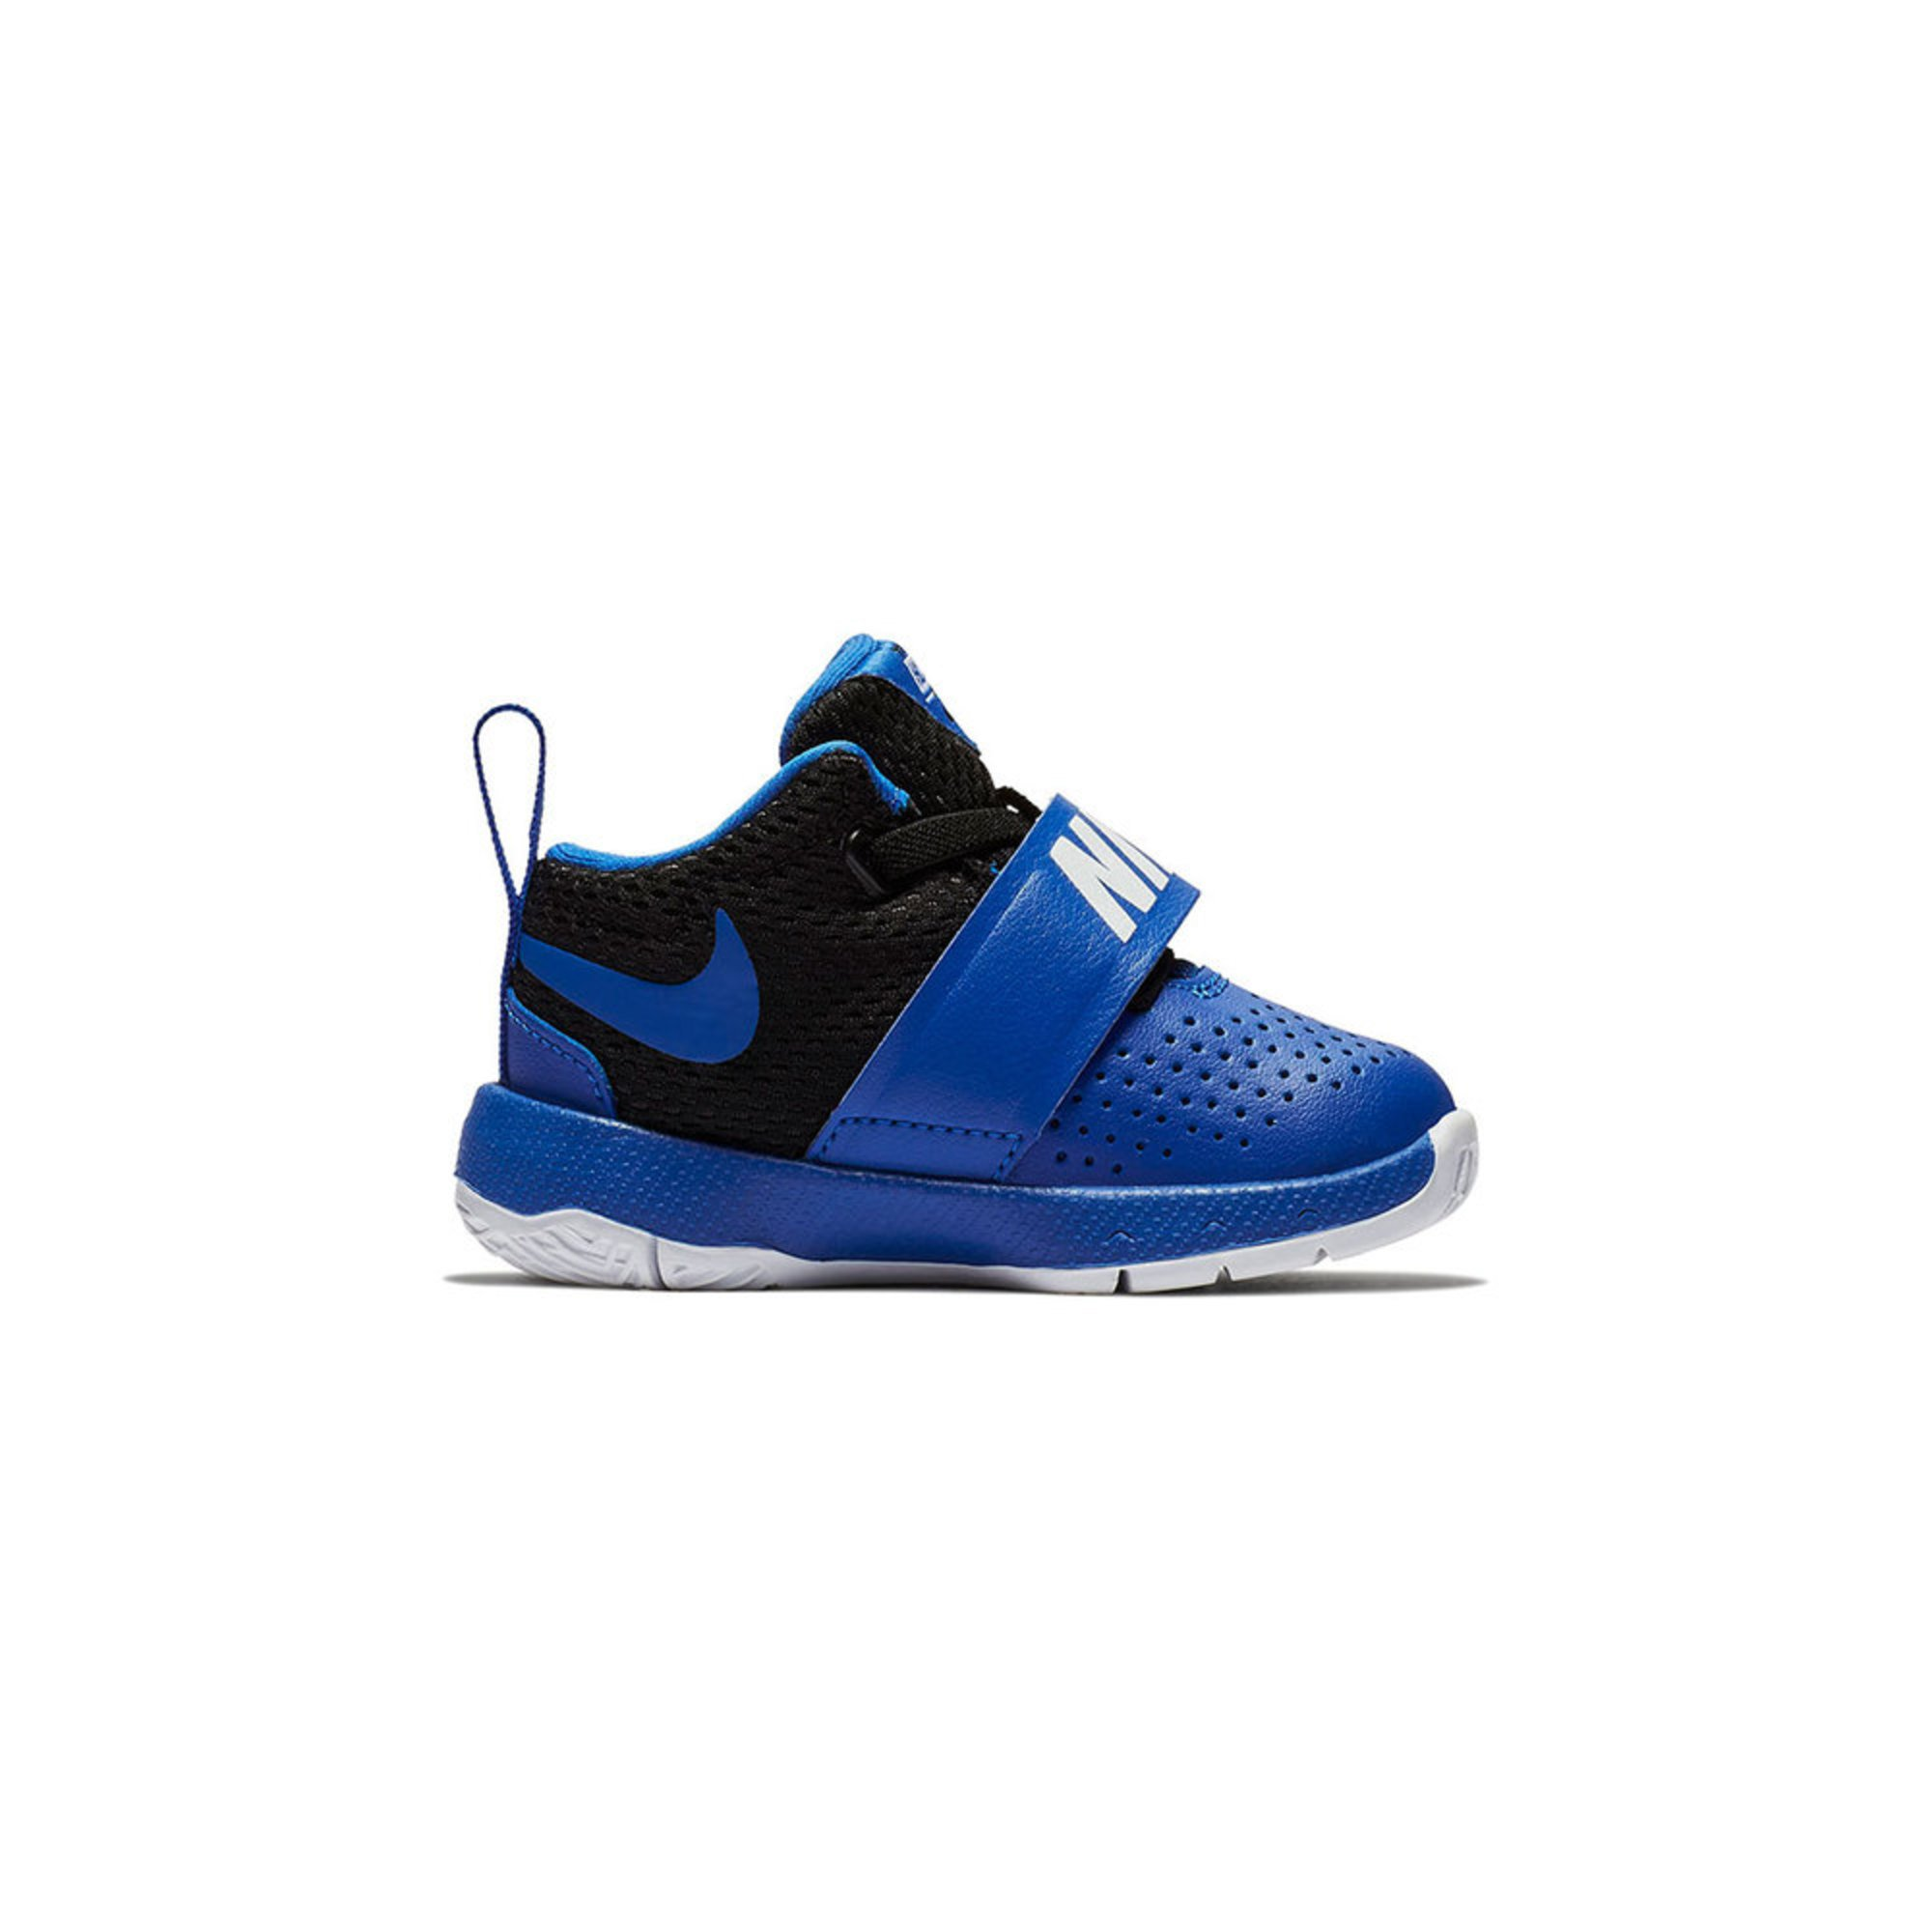 099f884f74 Nike Boys Team Hustle D 8 Basketball Shoe (infant/toddler) | Toddler ...